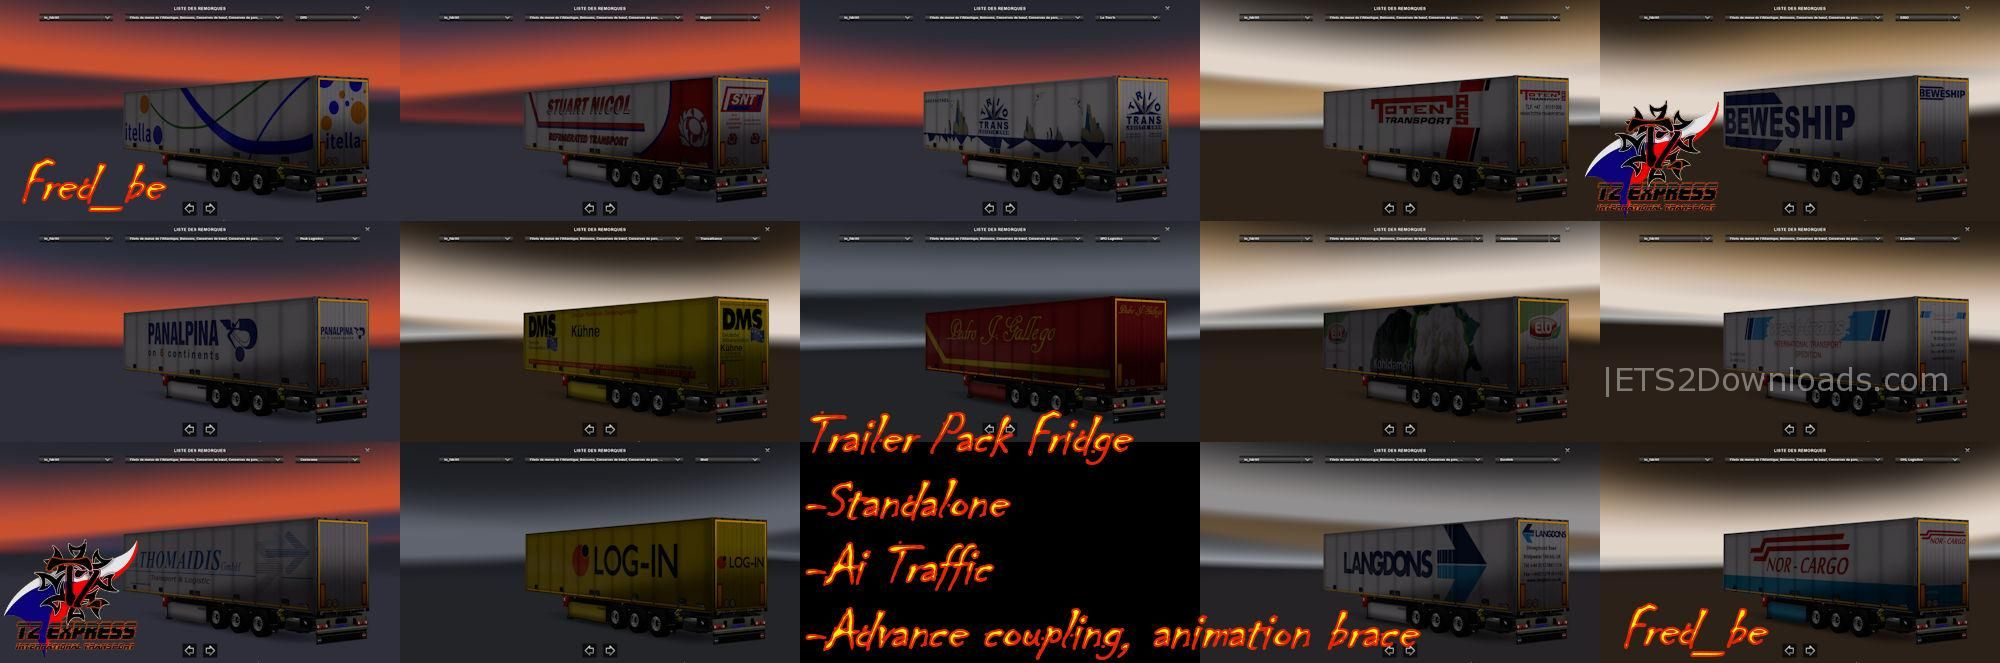 trailer-pack-fridge-1